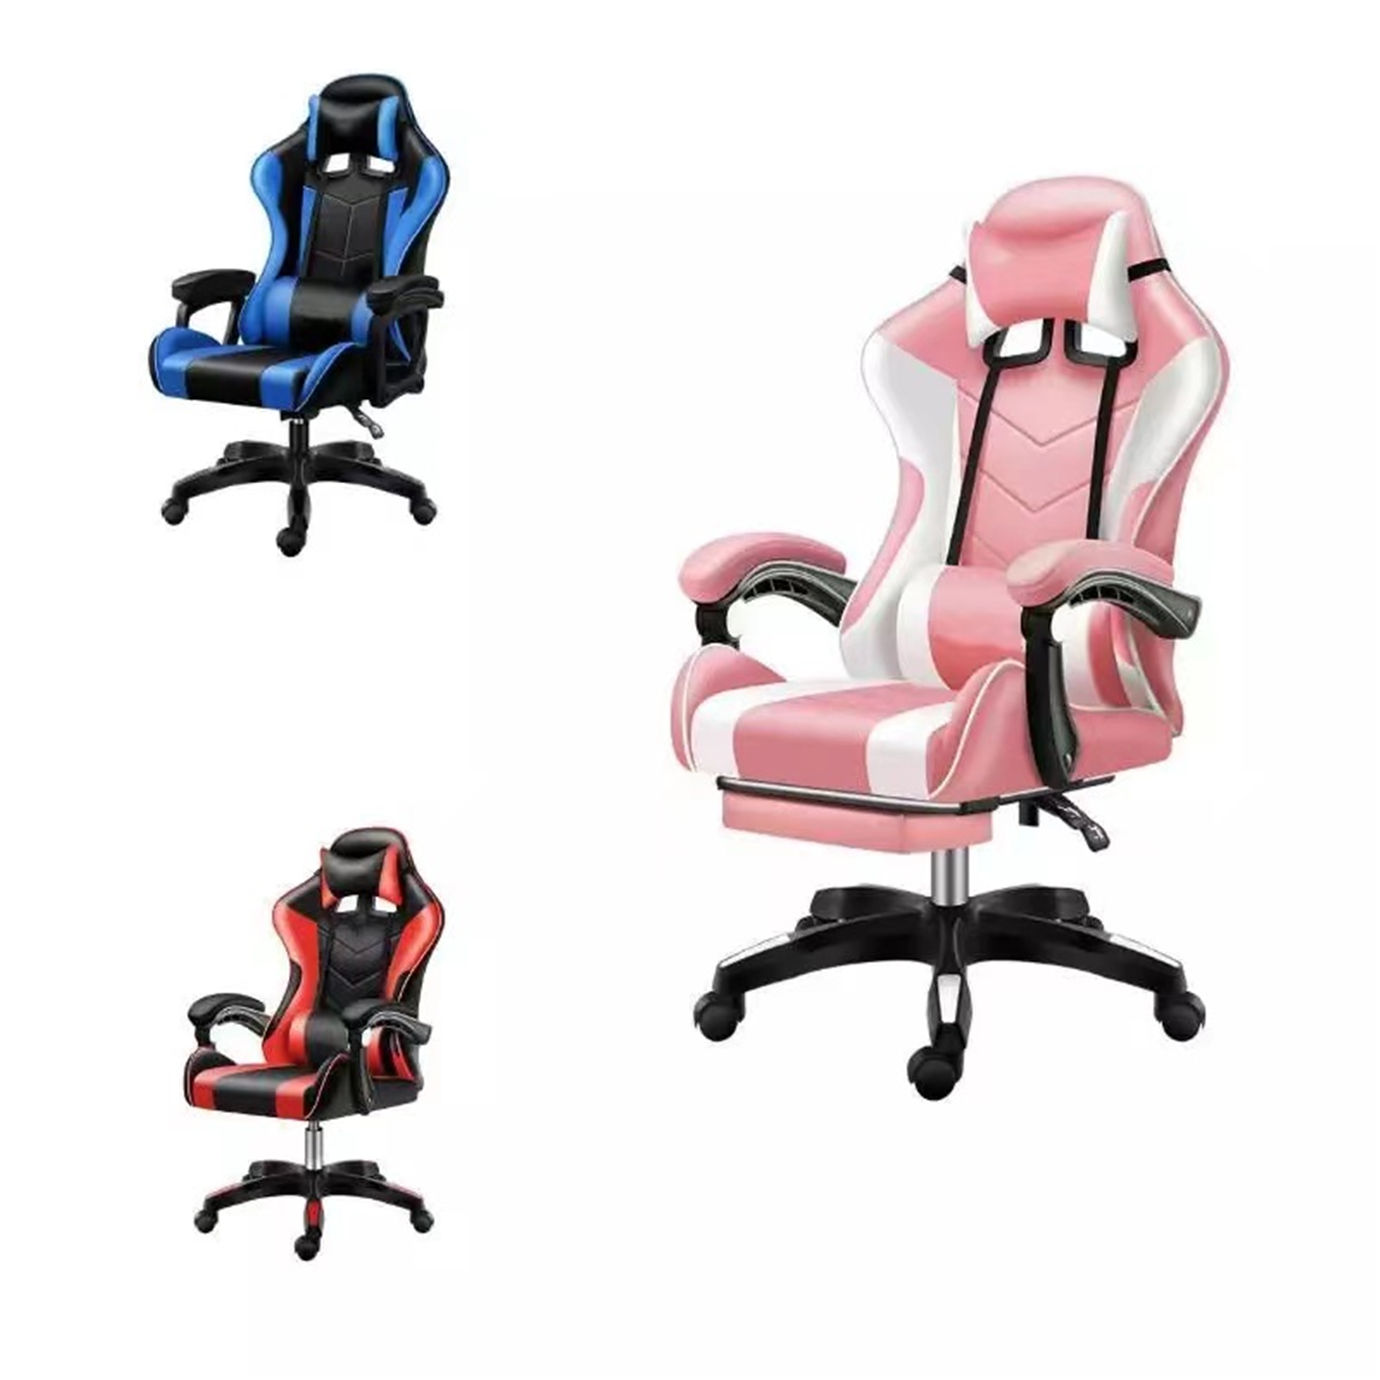 scorpion gaming chair Racing Style ergonomic game chair High Back Computer Chair with Height Adjustment for gamer